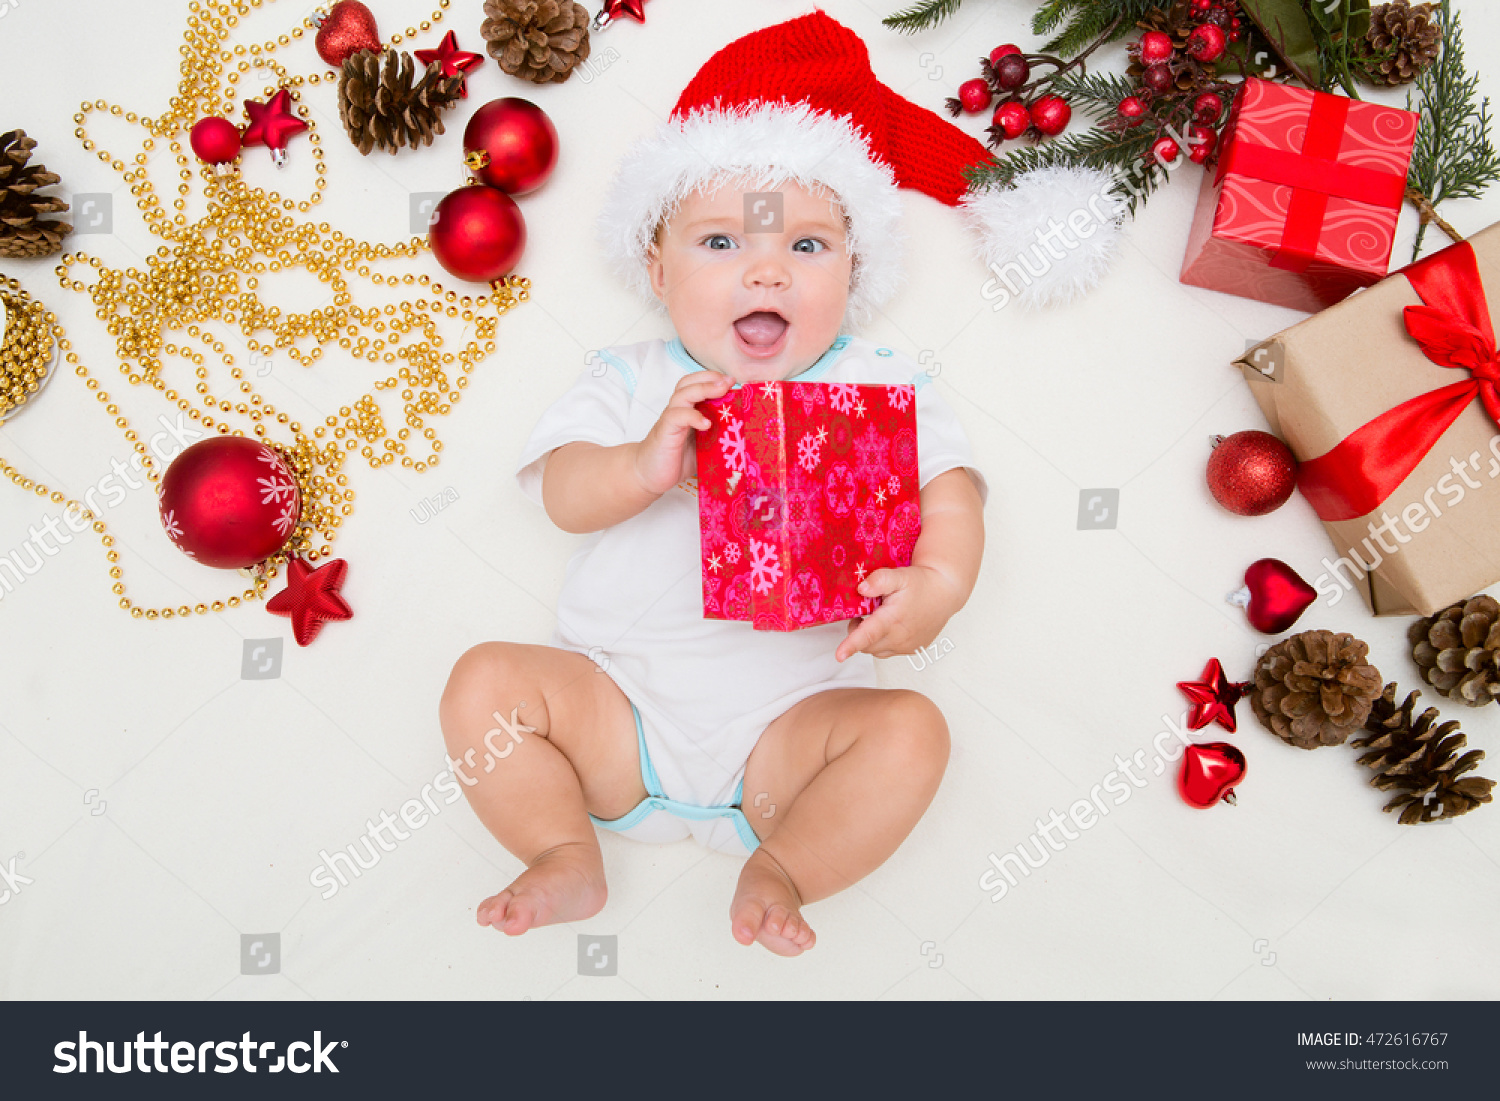 Baby first christmas. Beautiful little baby celebrates Christmas. New  Year s holidays. Baby with 28c58bf8884d